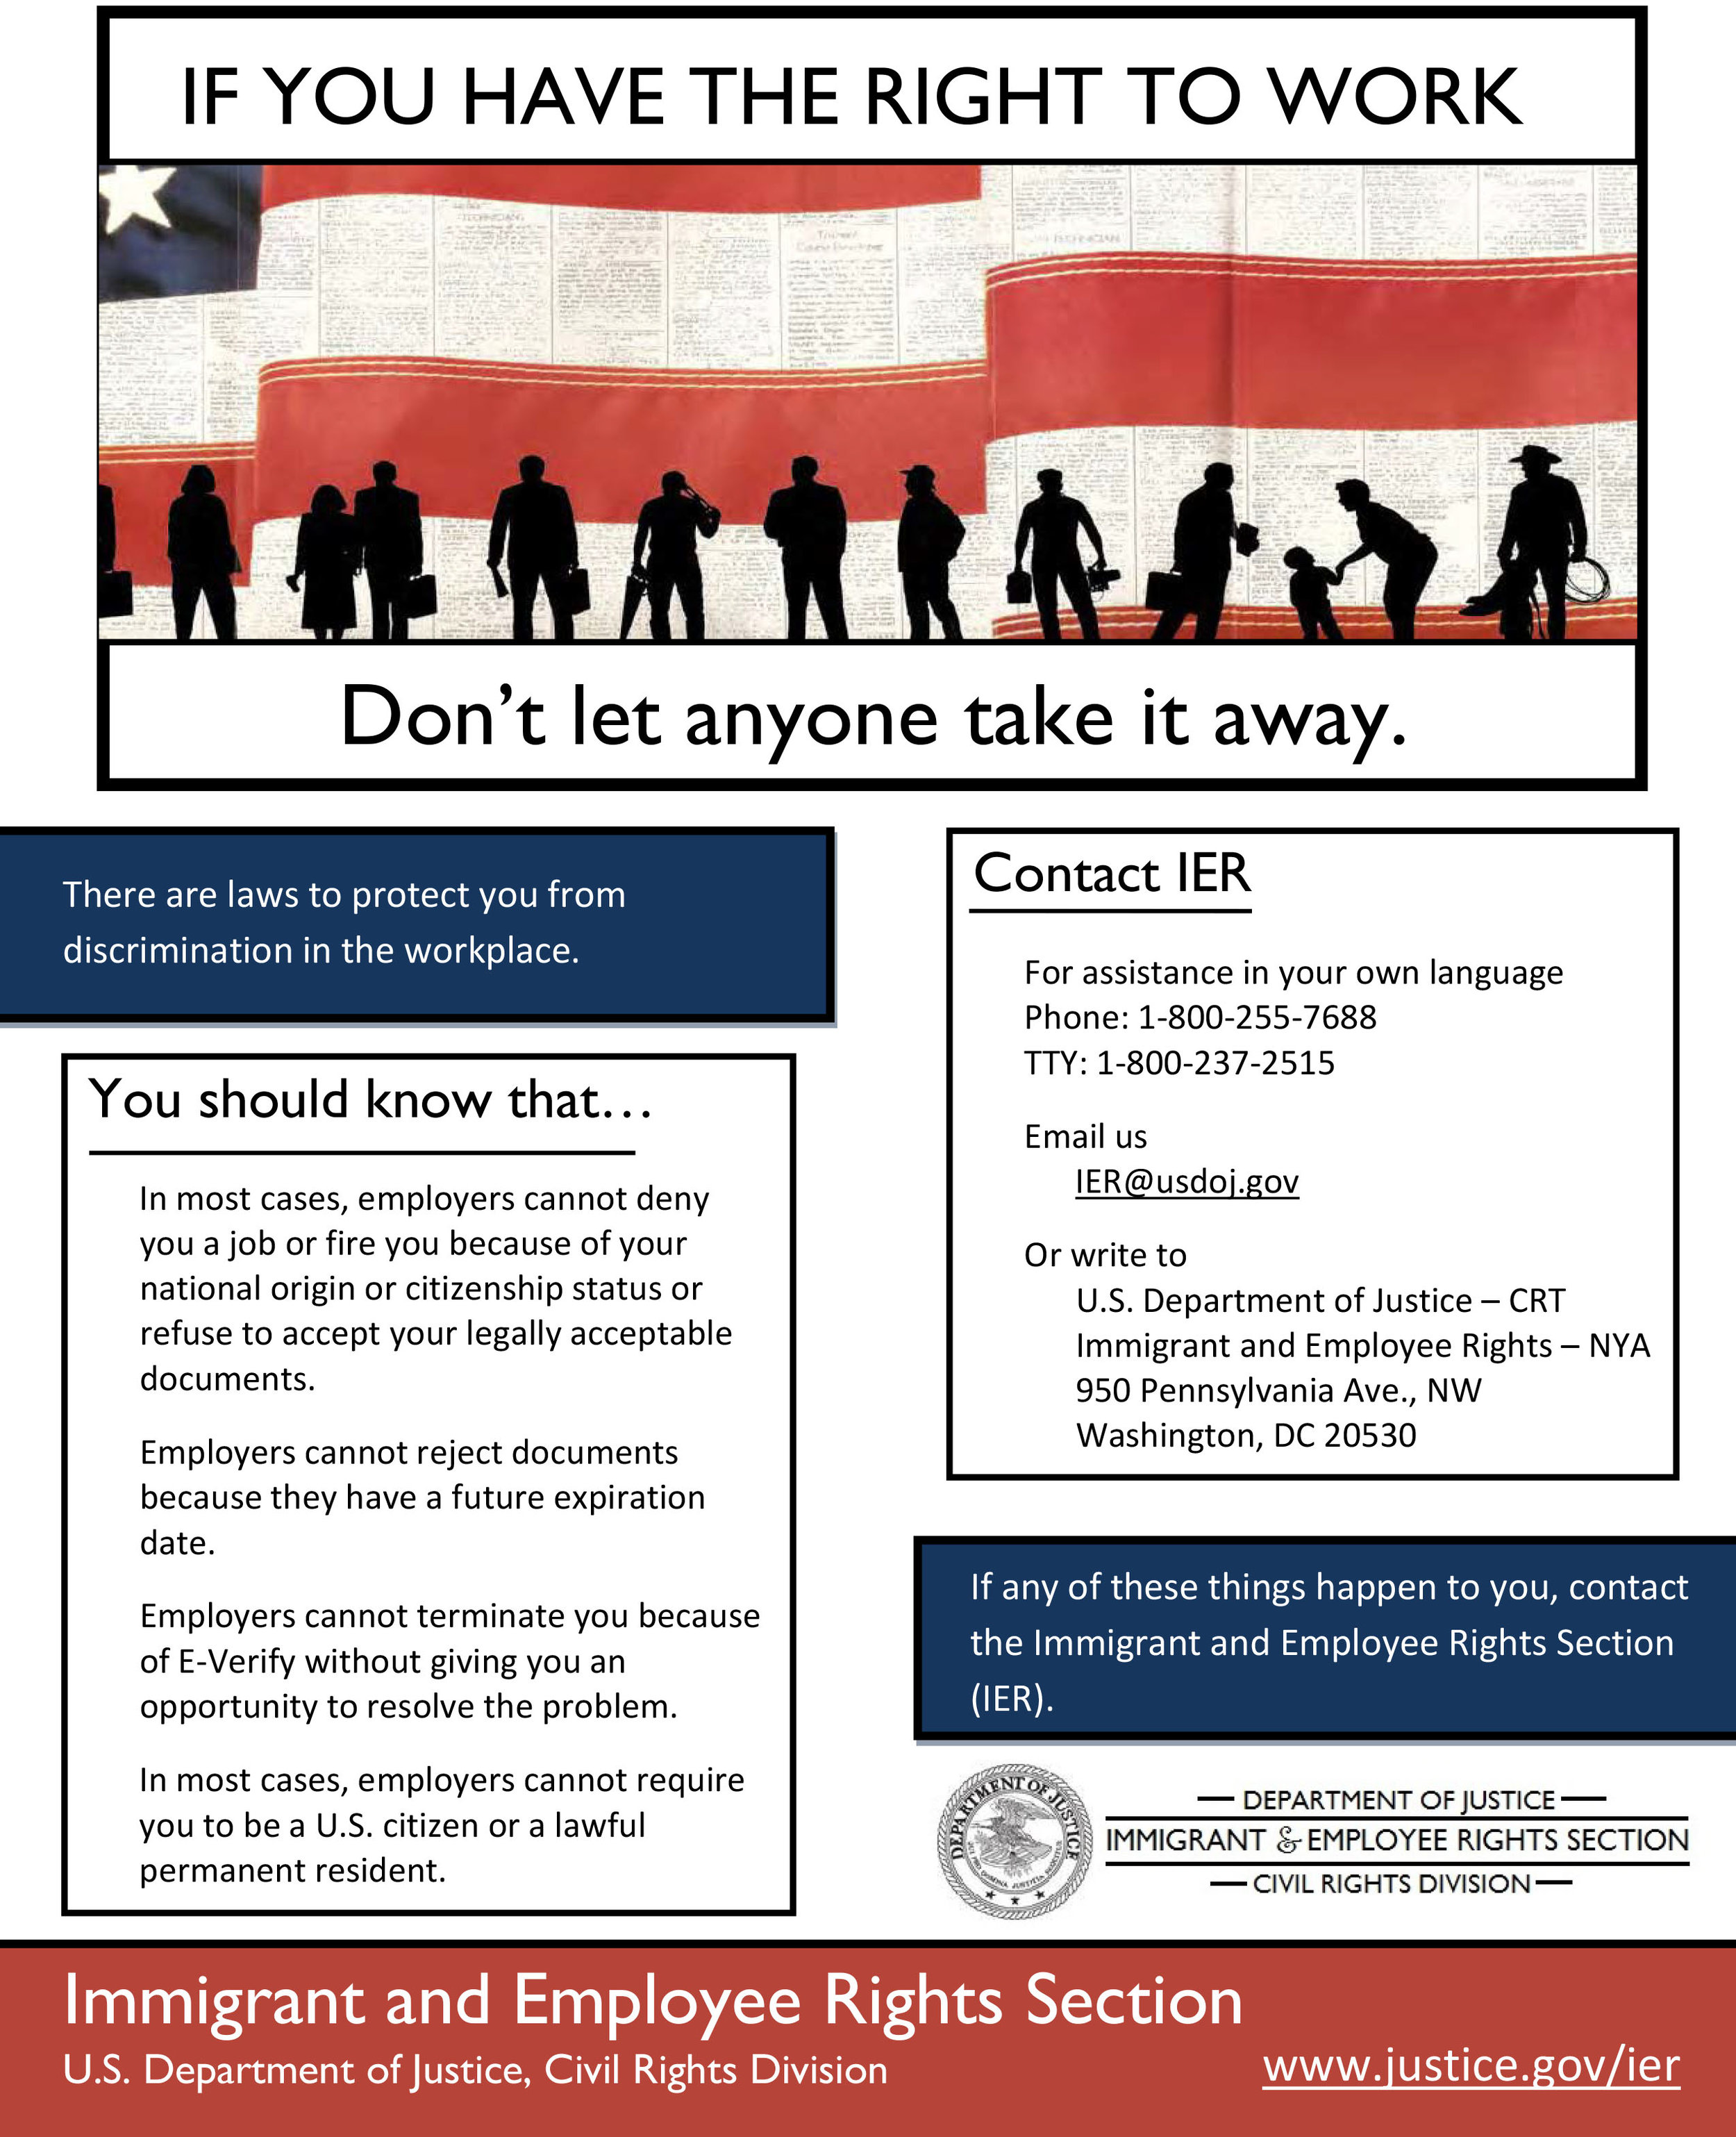 Immigrant and Employee Rights (IER) Poster